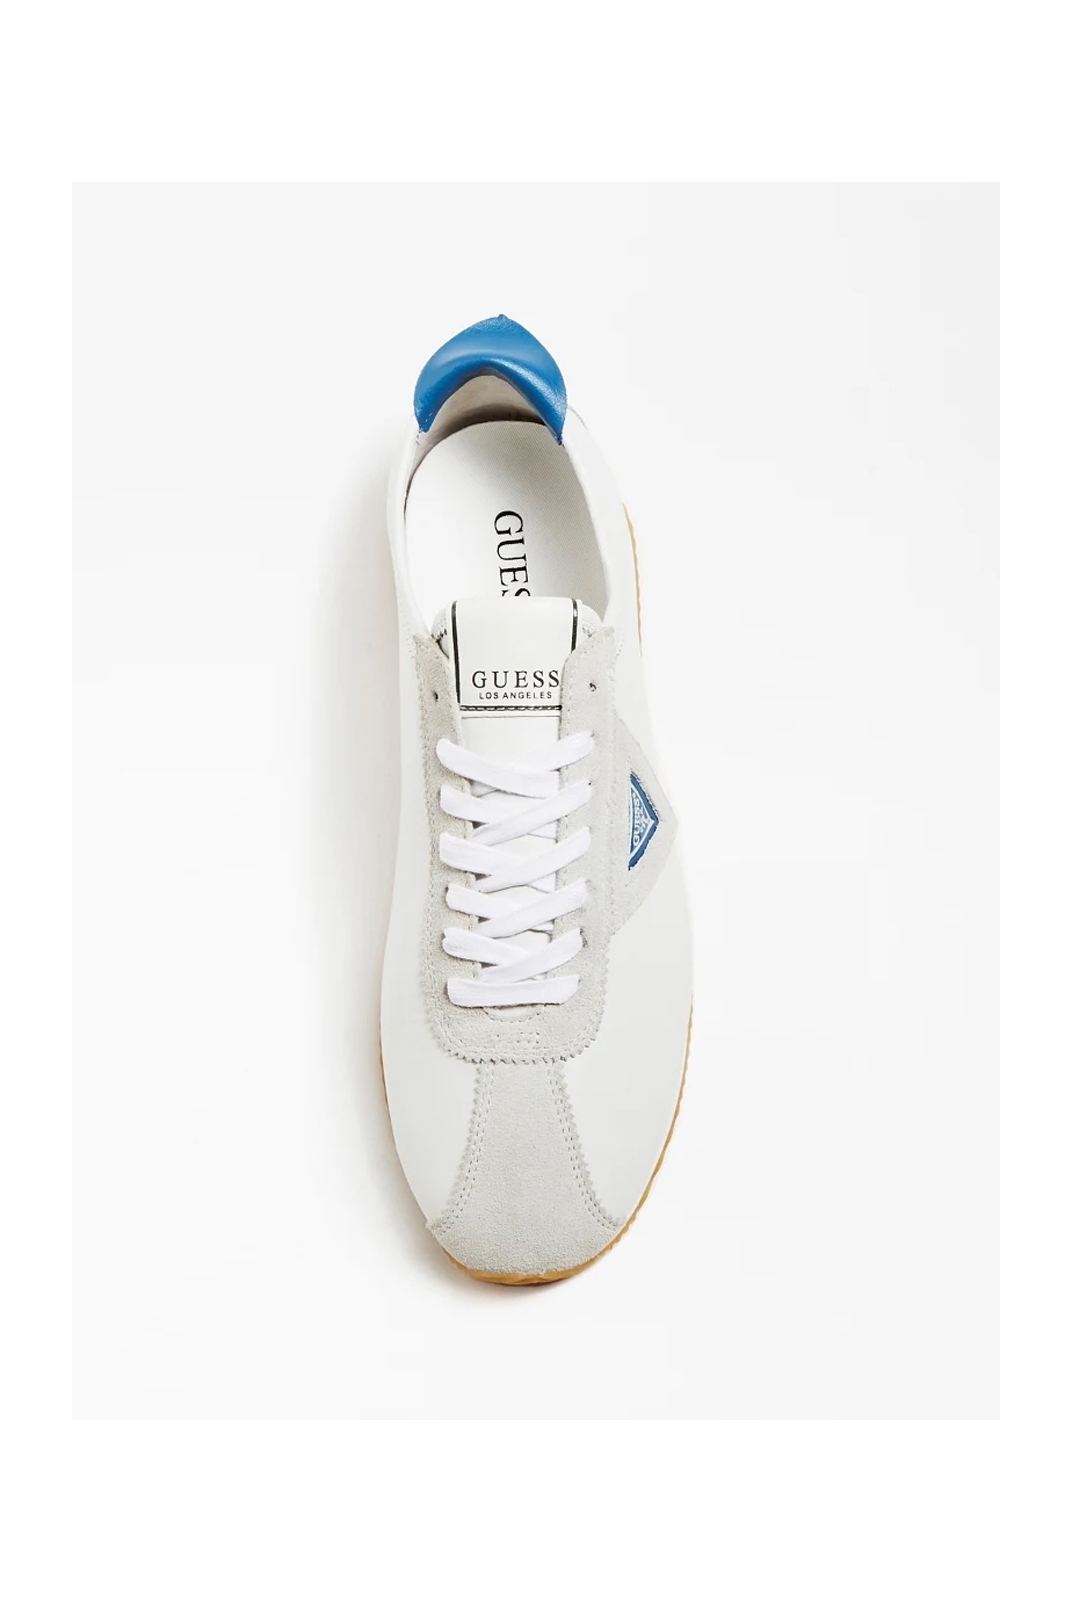 Baskets / Sport  Guess jeans FM6TOR LEA12 WHBLR WHITE BLUE